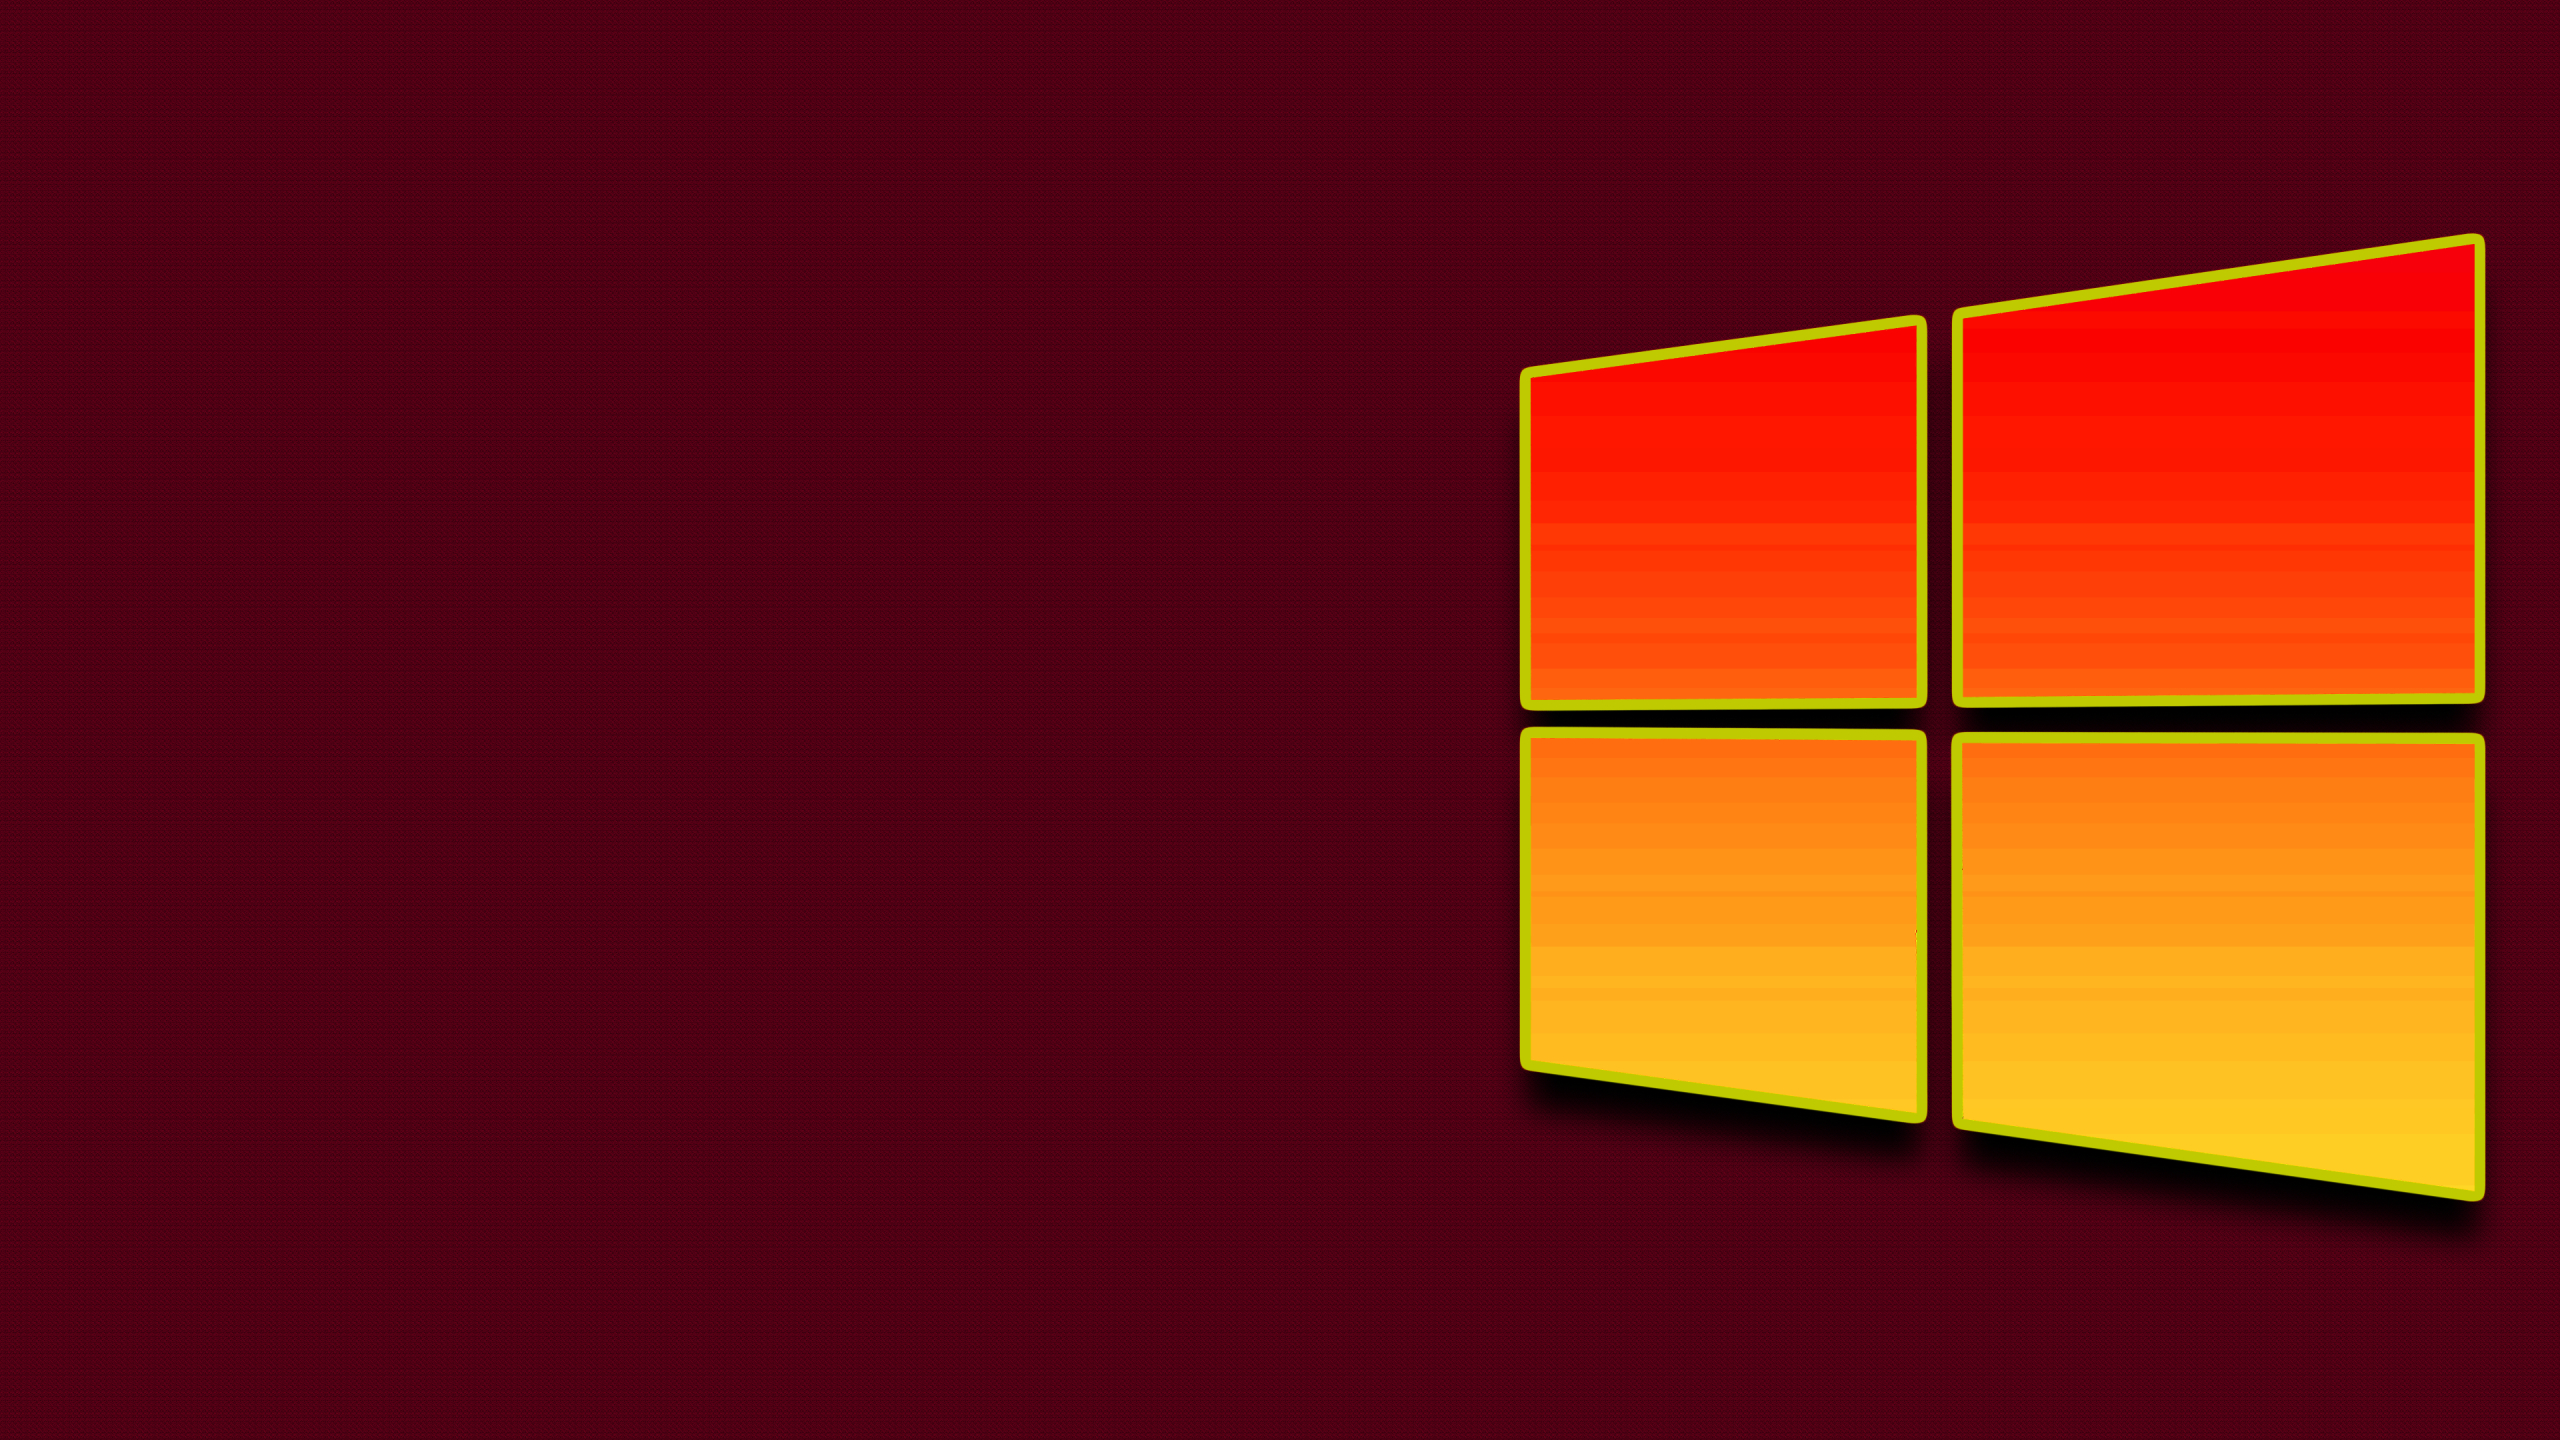 2560x1440 Windows 10 4k 1440p Resolution Wallpaper Hd Artist 4k Wallpapers Images Photos And Background